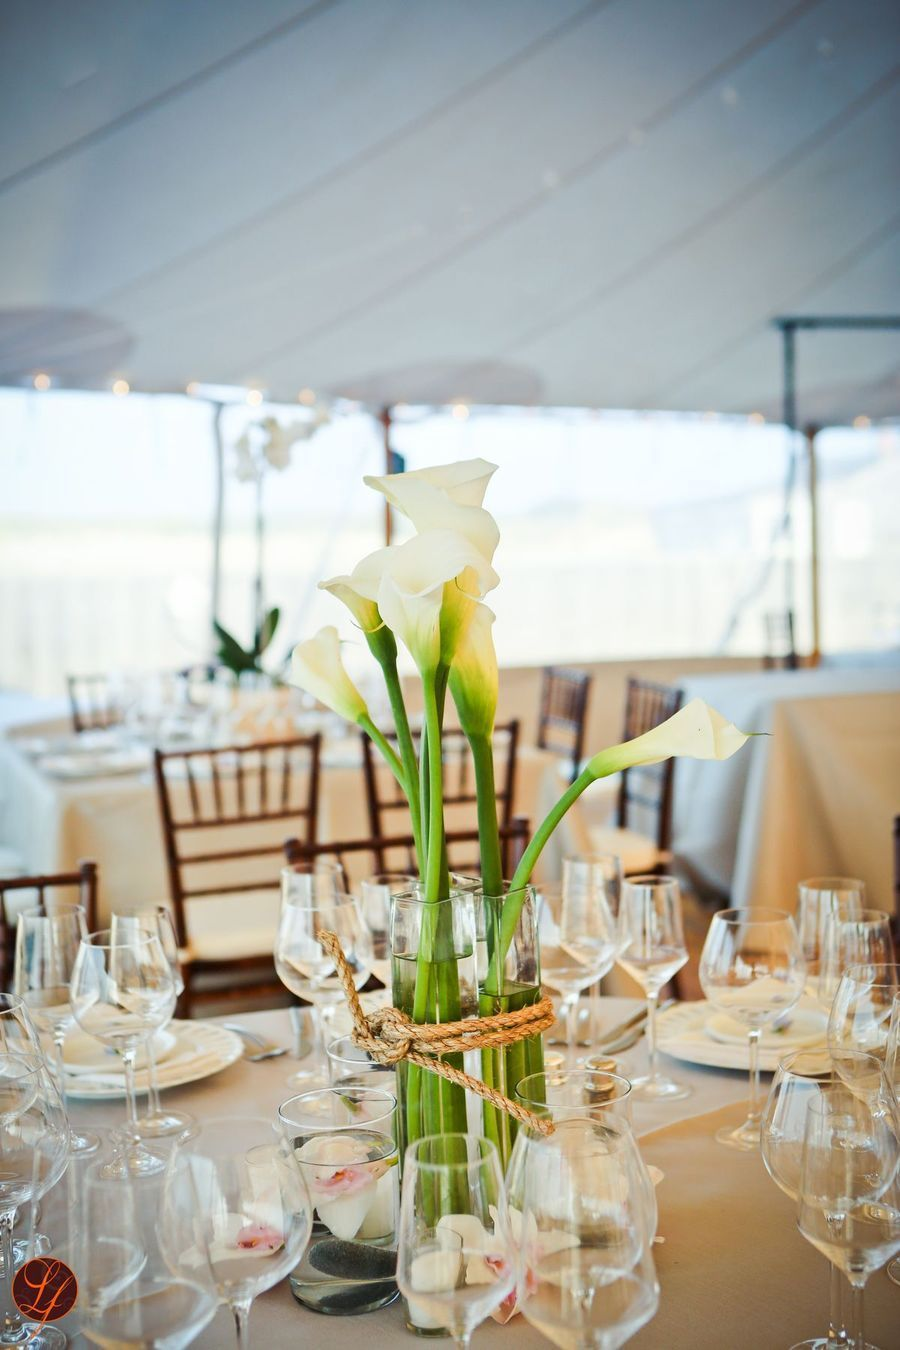 Christian wedding decoration designs  Nantucket Wedding from Soiree Floral  LifeFusion Studios